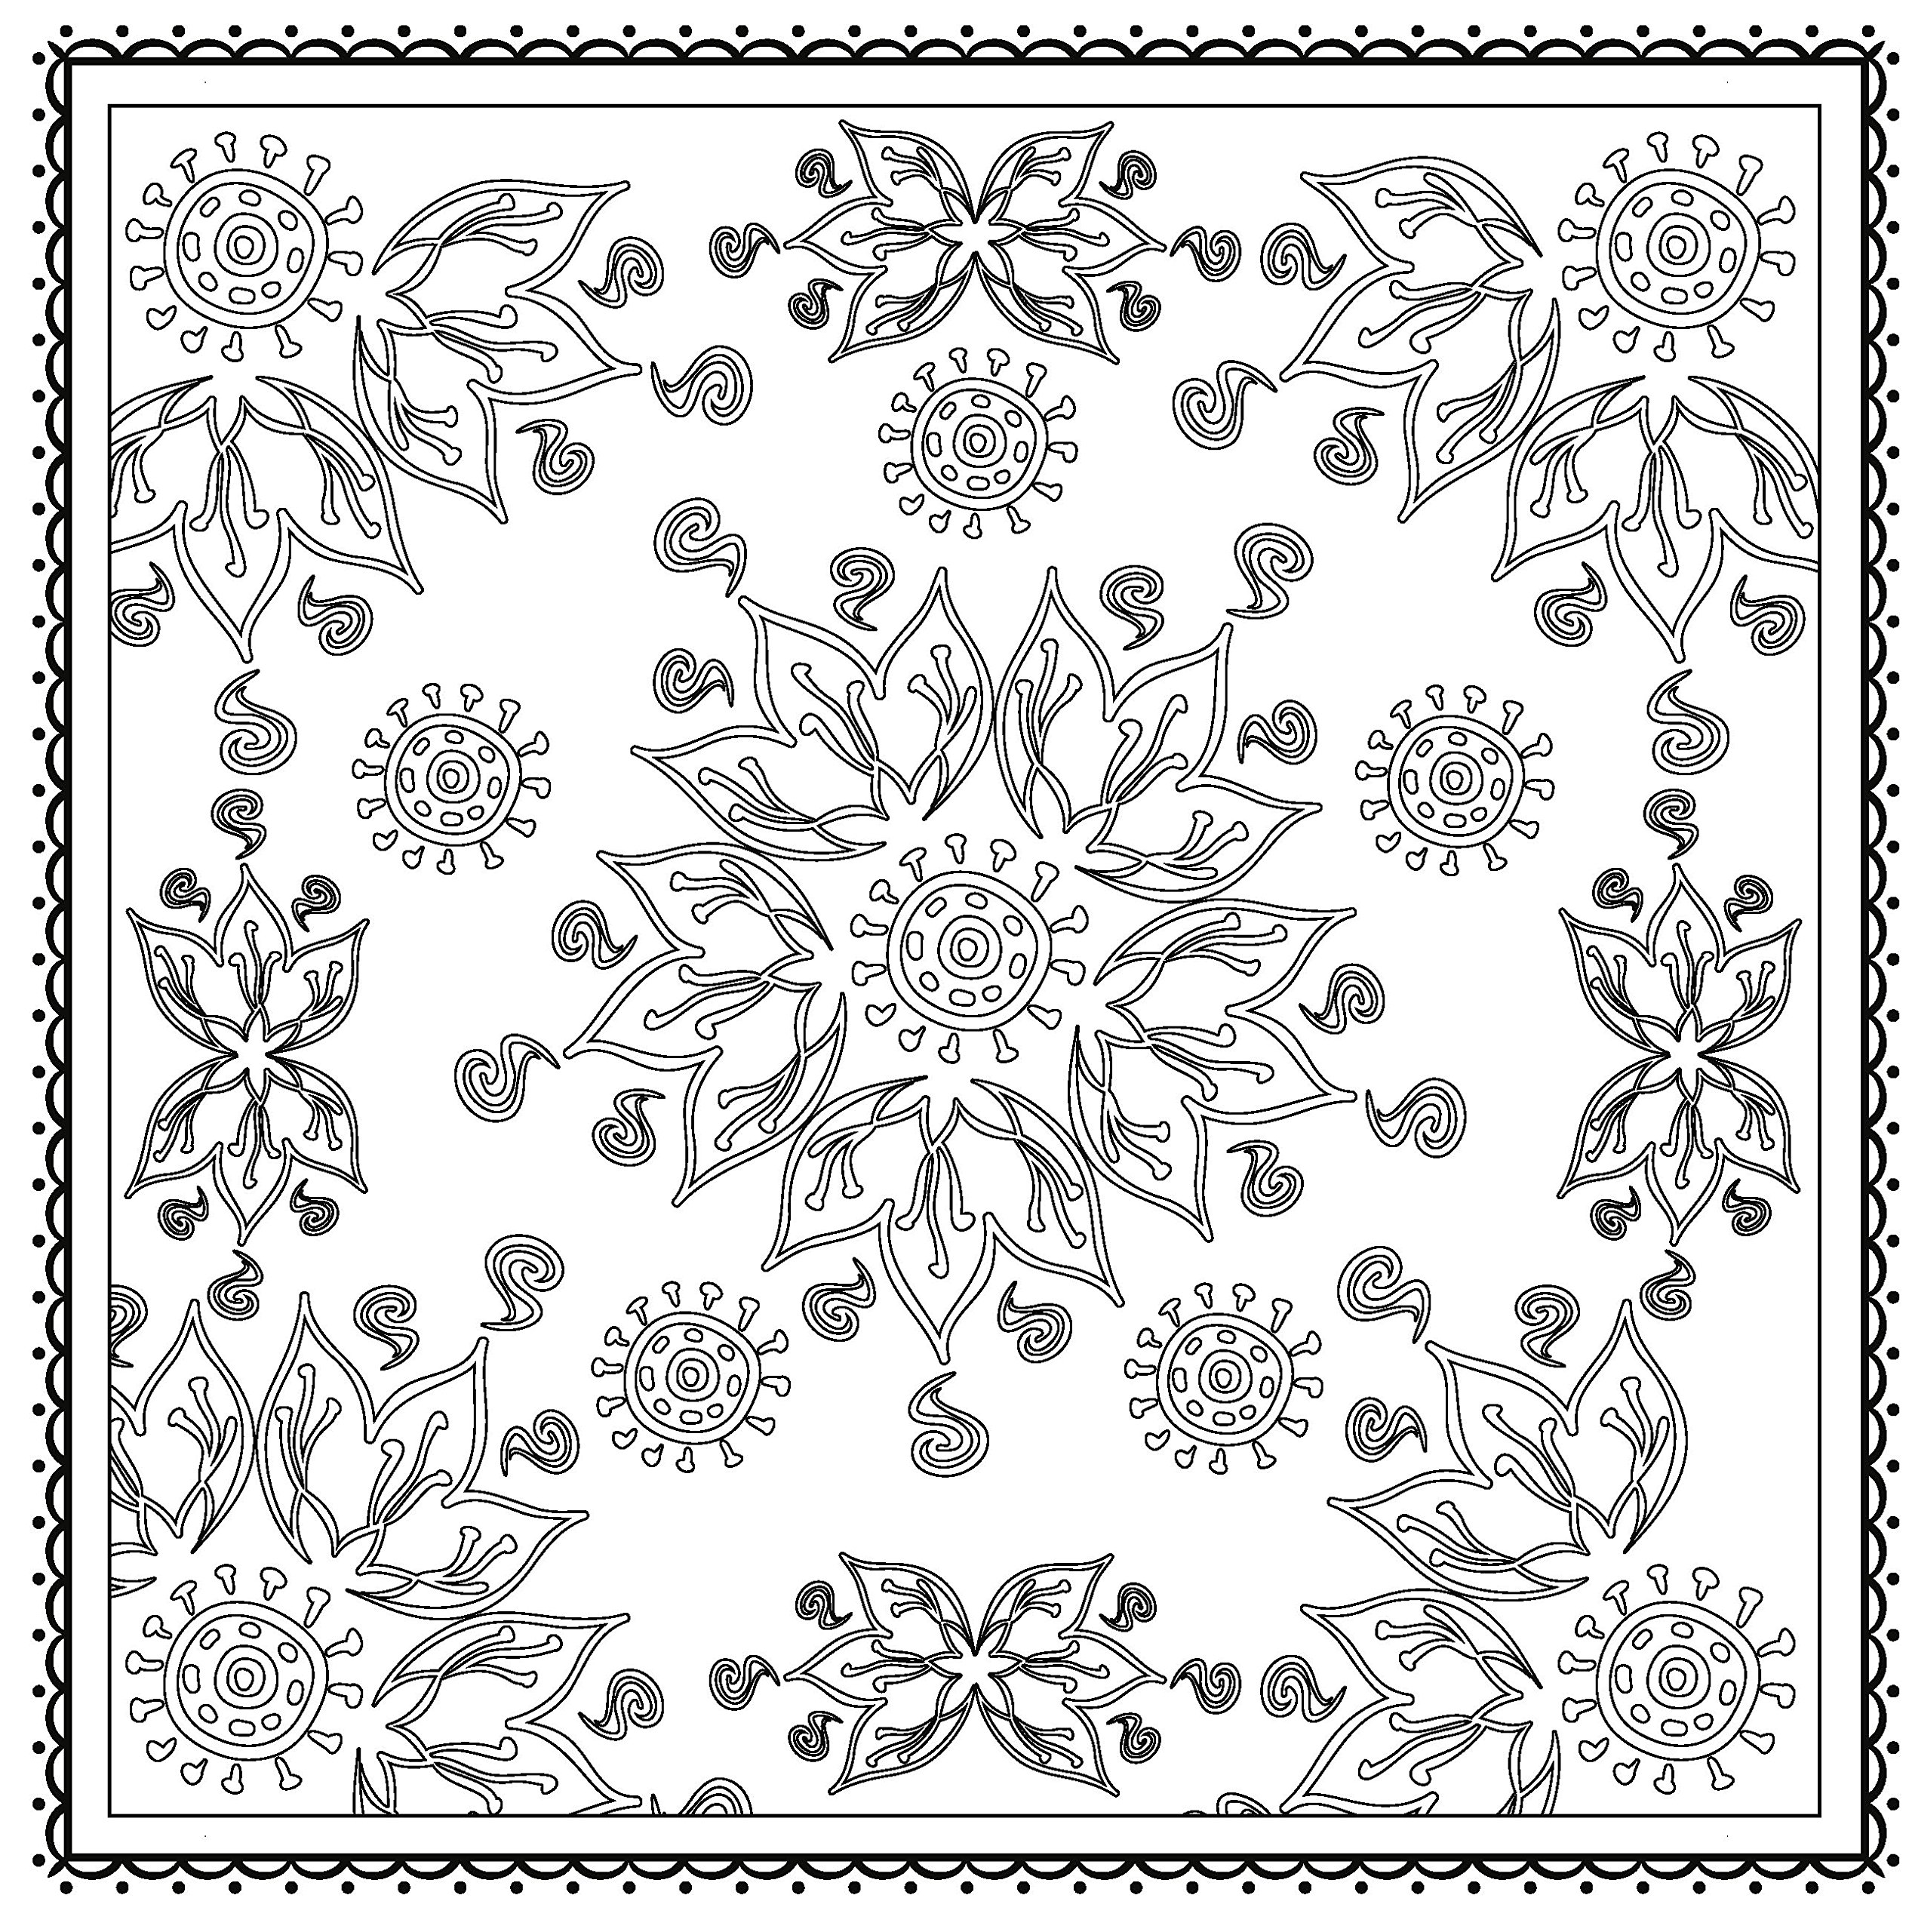 Winter magic beautiful holiday patterns coloring book for Coloring books for adults on amazon